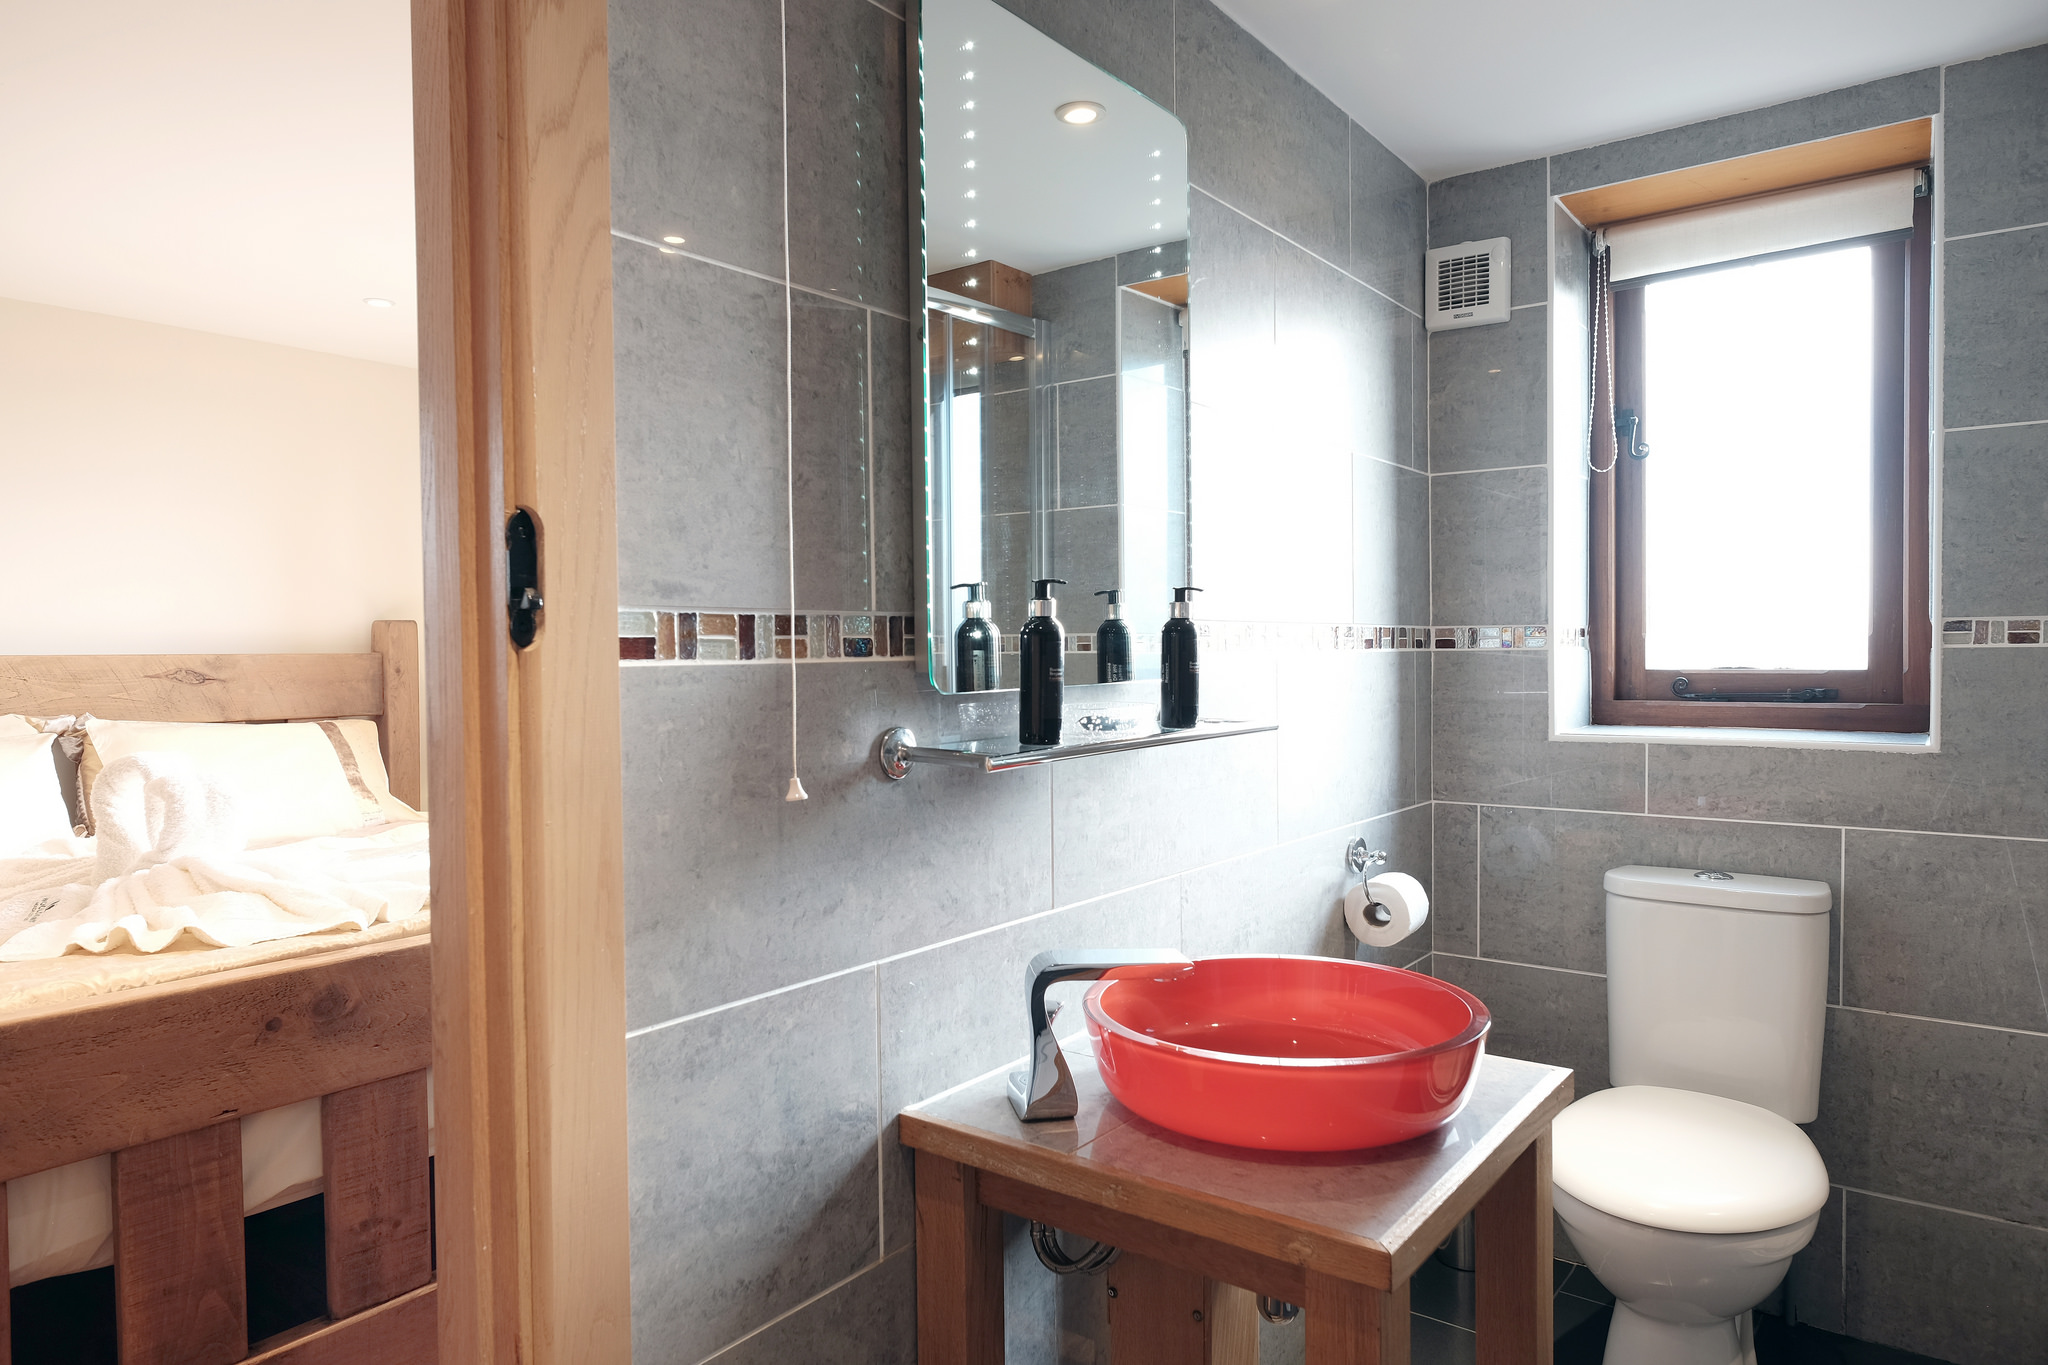 Bedroom and the bathroom with red sink and LED mirror